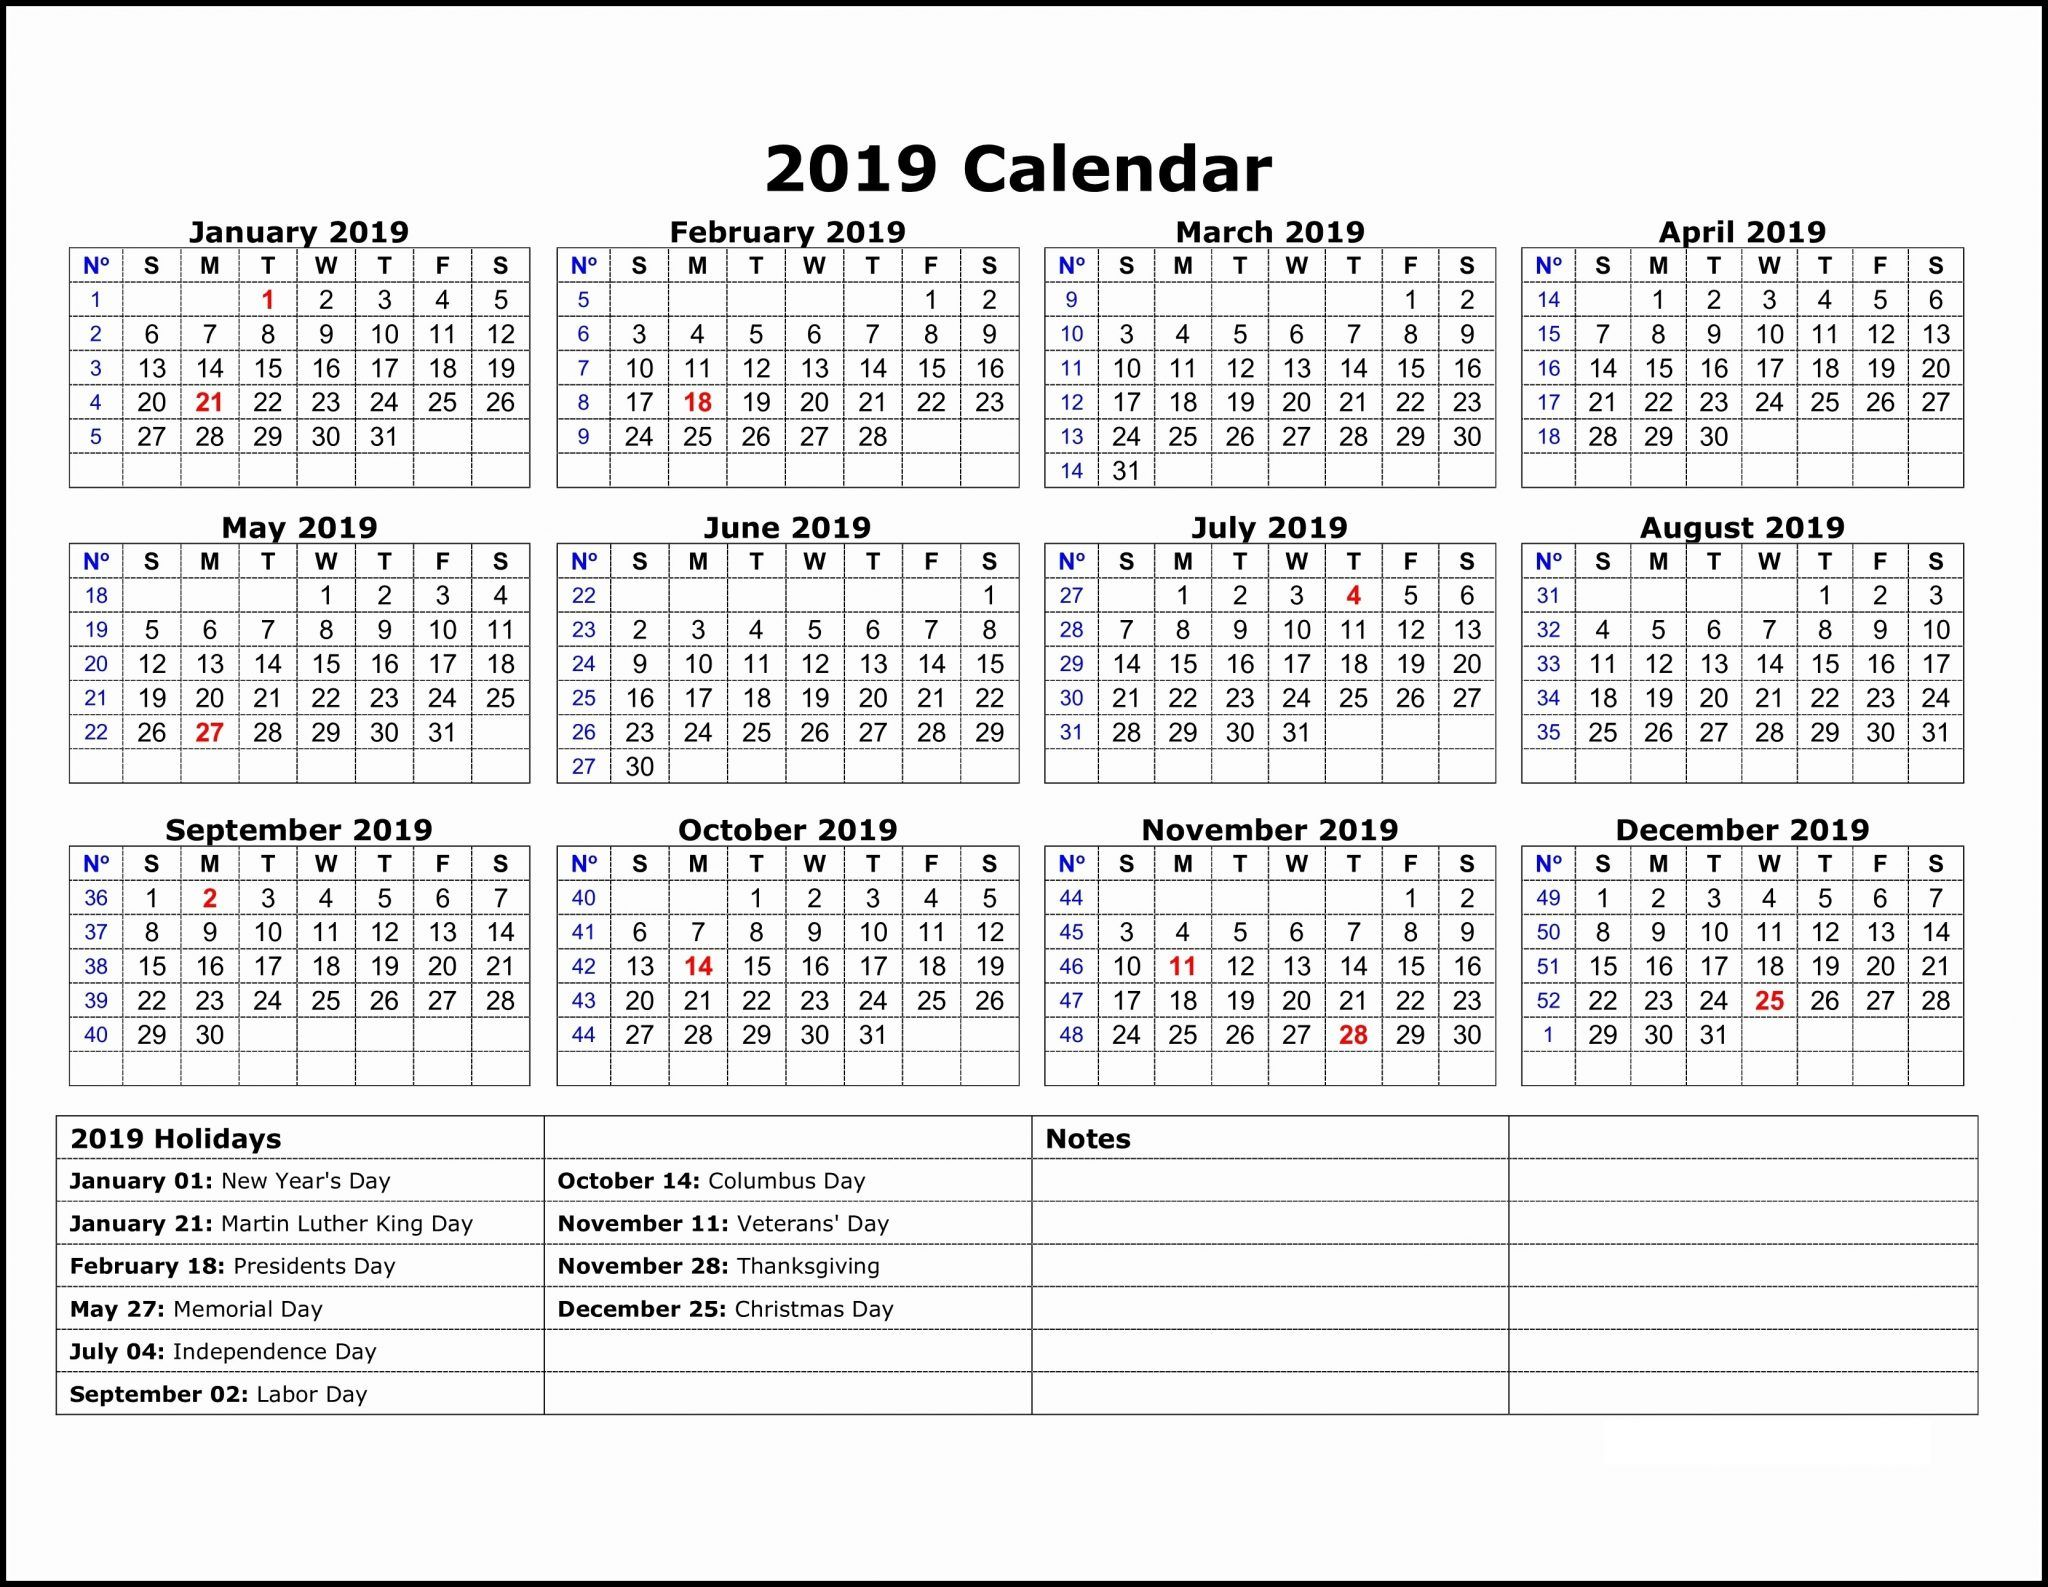 Free 2019 One Page Calendar Printable Download With Images